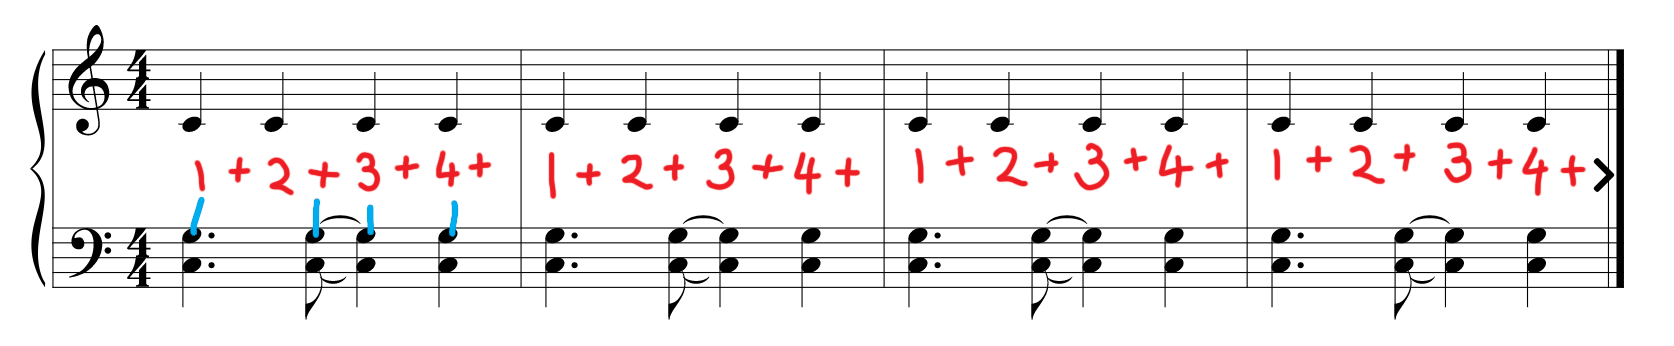 Sheet music for piano exercise no. 2 with mark-up. Counting is added and matched to respective notes.